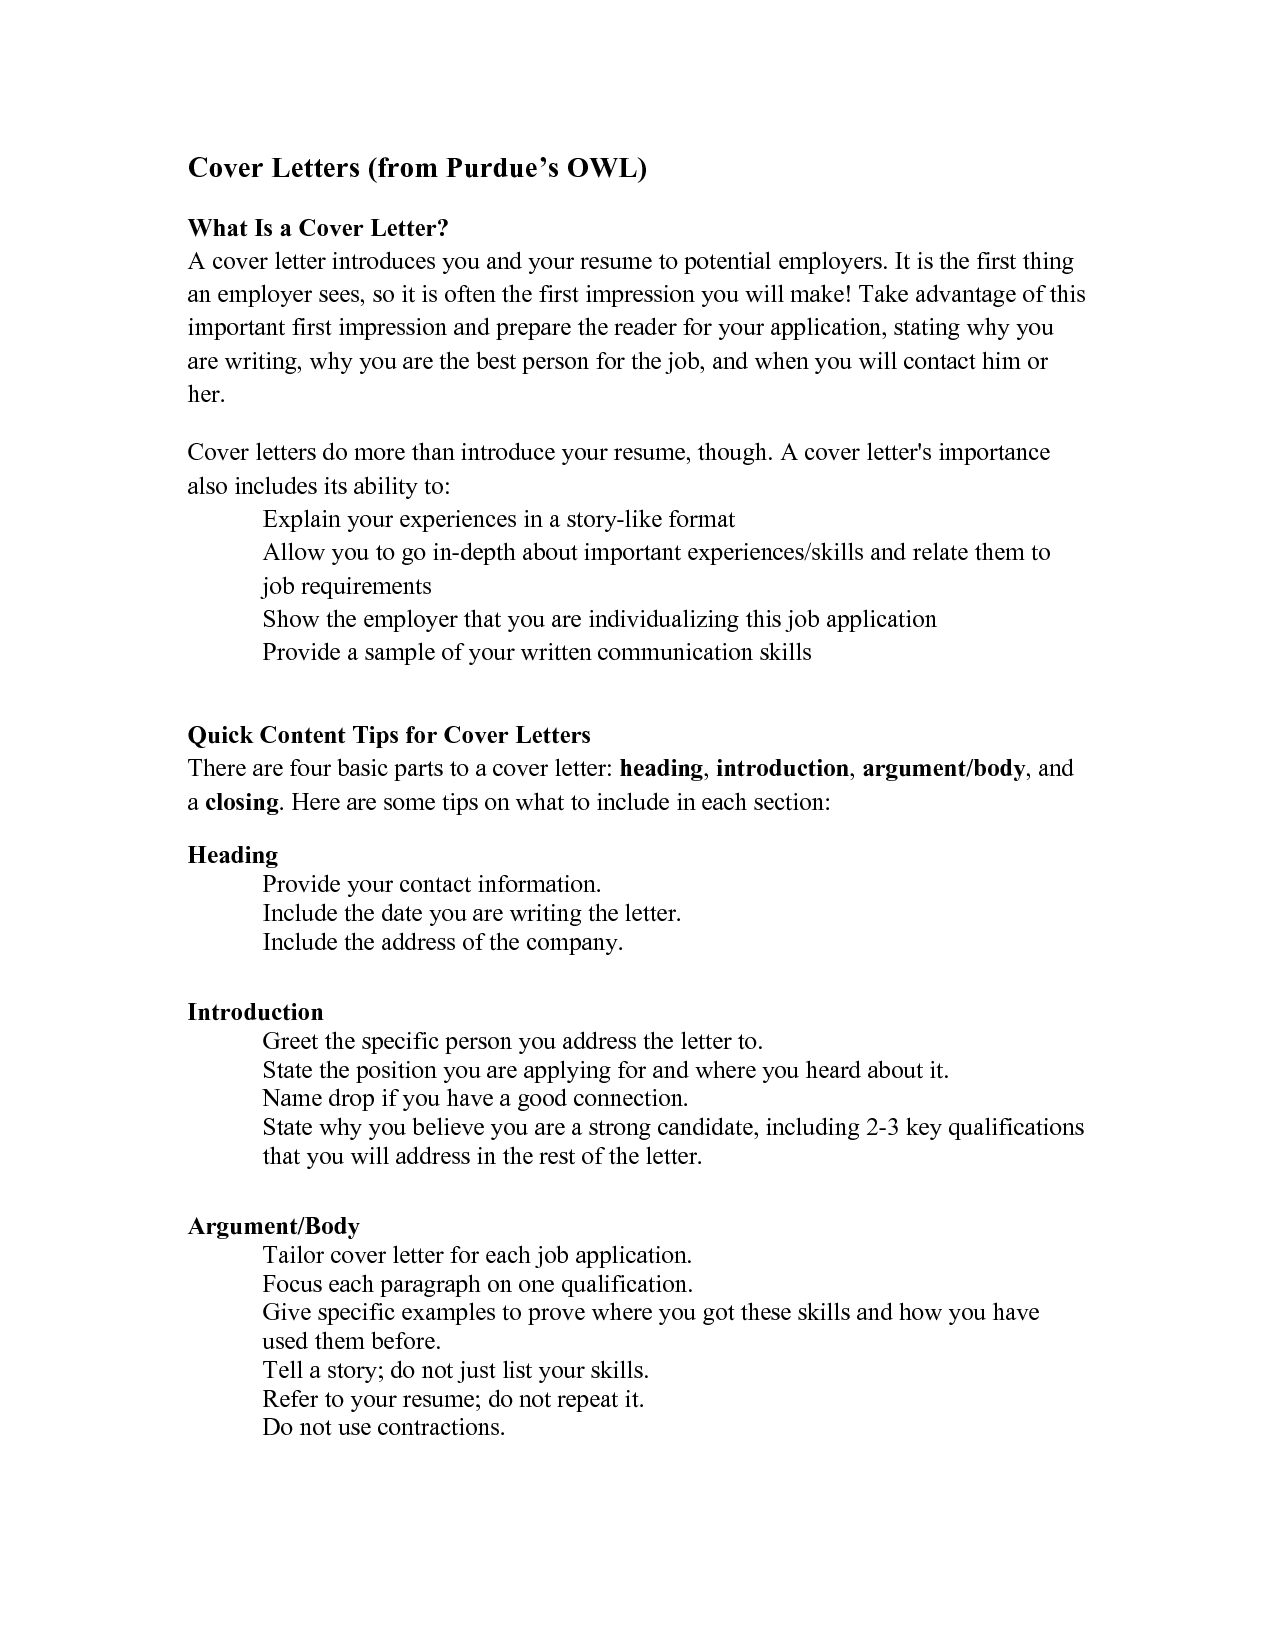 Whats A Cover Letter Top Resume Headers Heading For Samples Examples Download Template